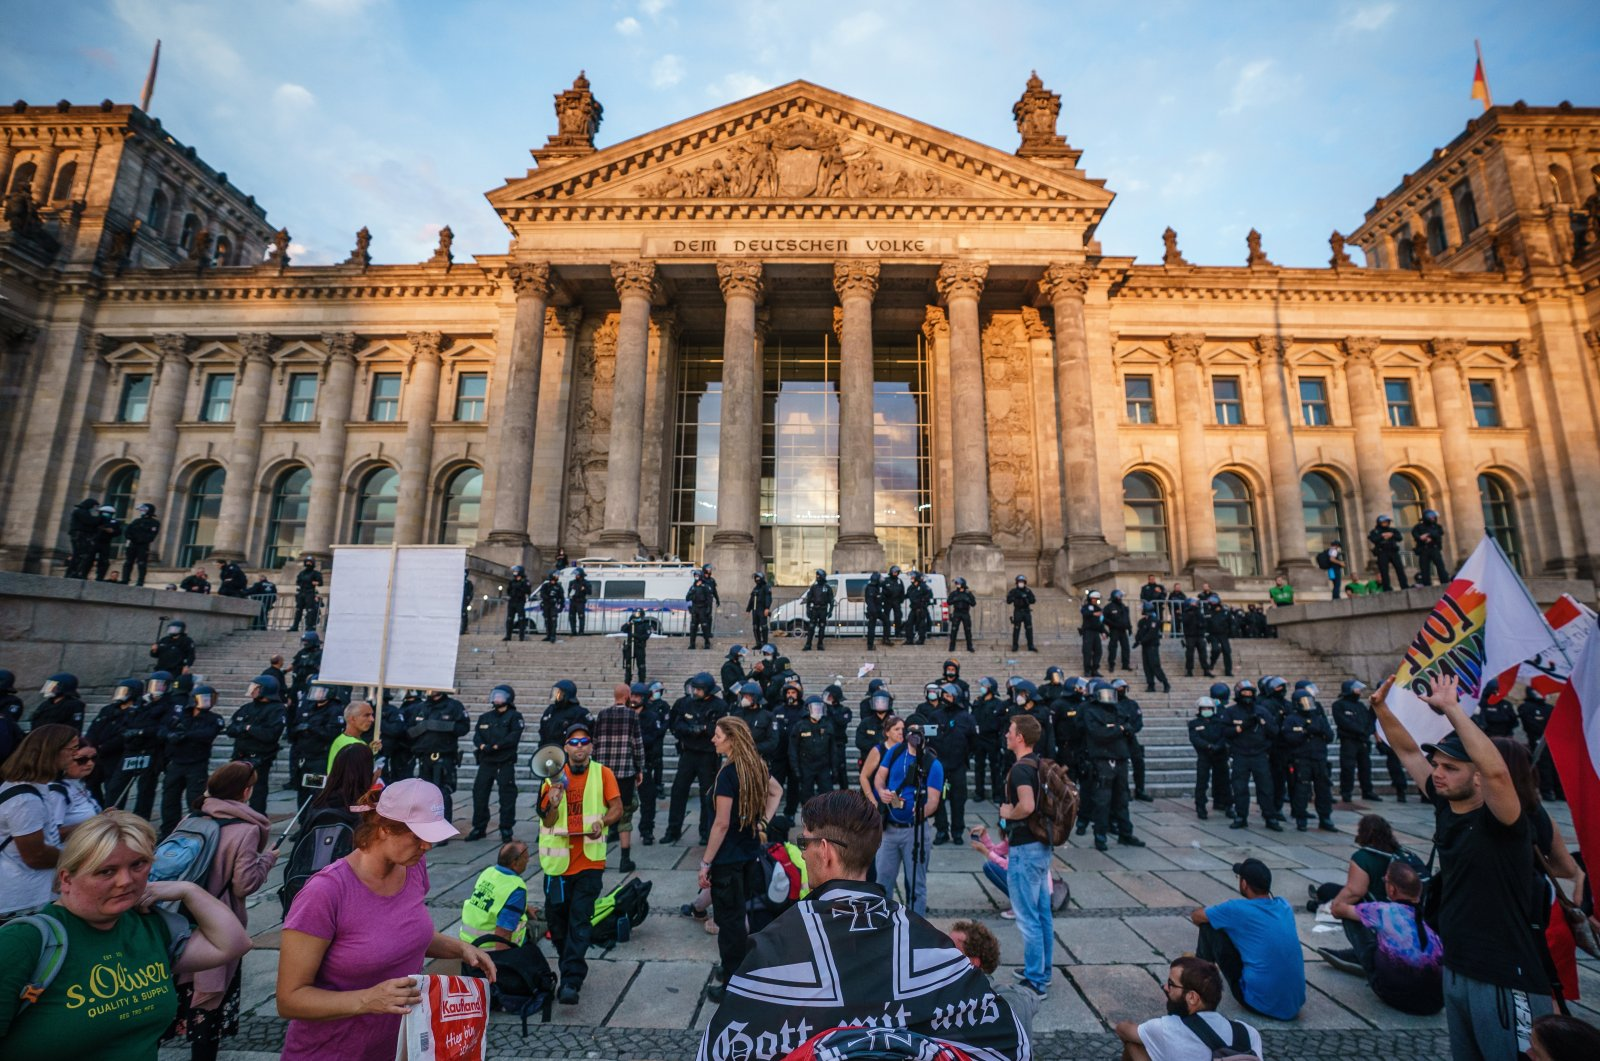 Riot police monitor the scene as right-wing protesters stand in the area in front of the Reichstag building, the seat of the German parliament Bundestag, which was cleared by police after right-wing protesters tried to climb the stairs and enter the building following a protest against government-imposed coronavirus regulations, in Berlin, Germany, Aug. 29, 2020. (EPA Photo)